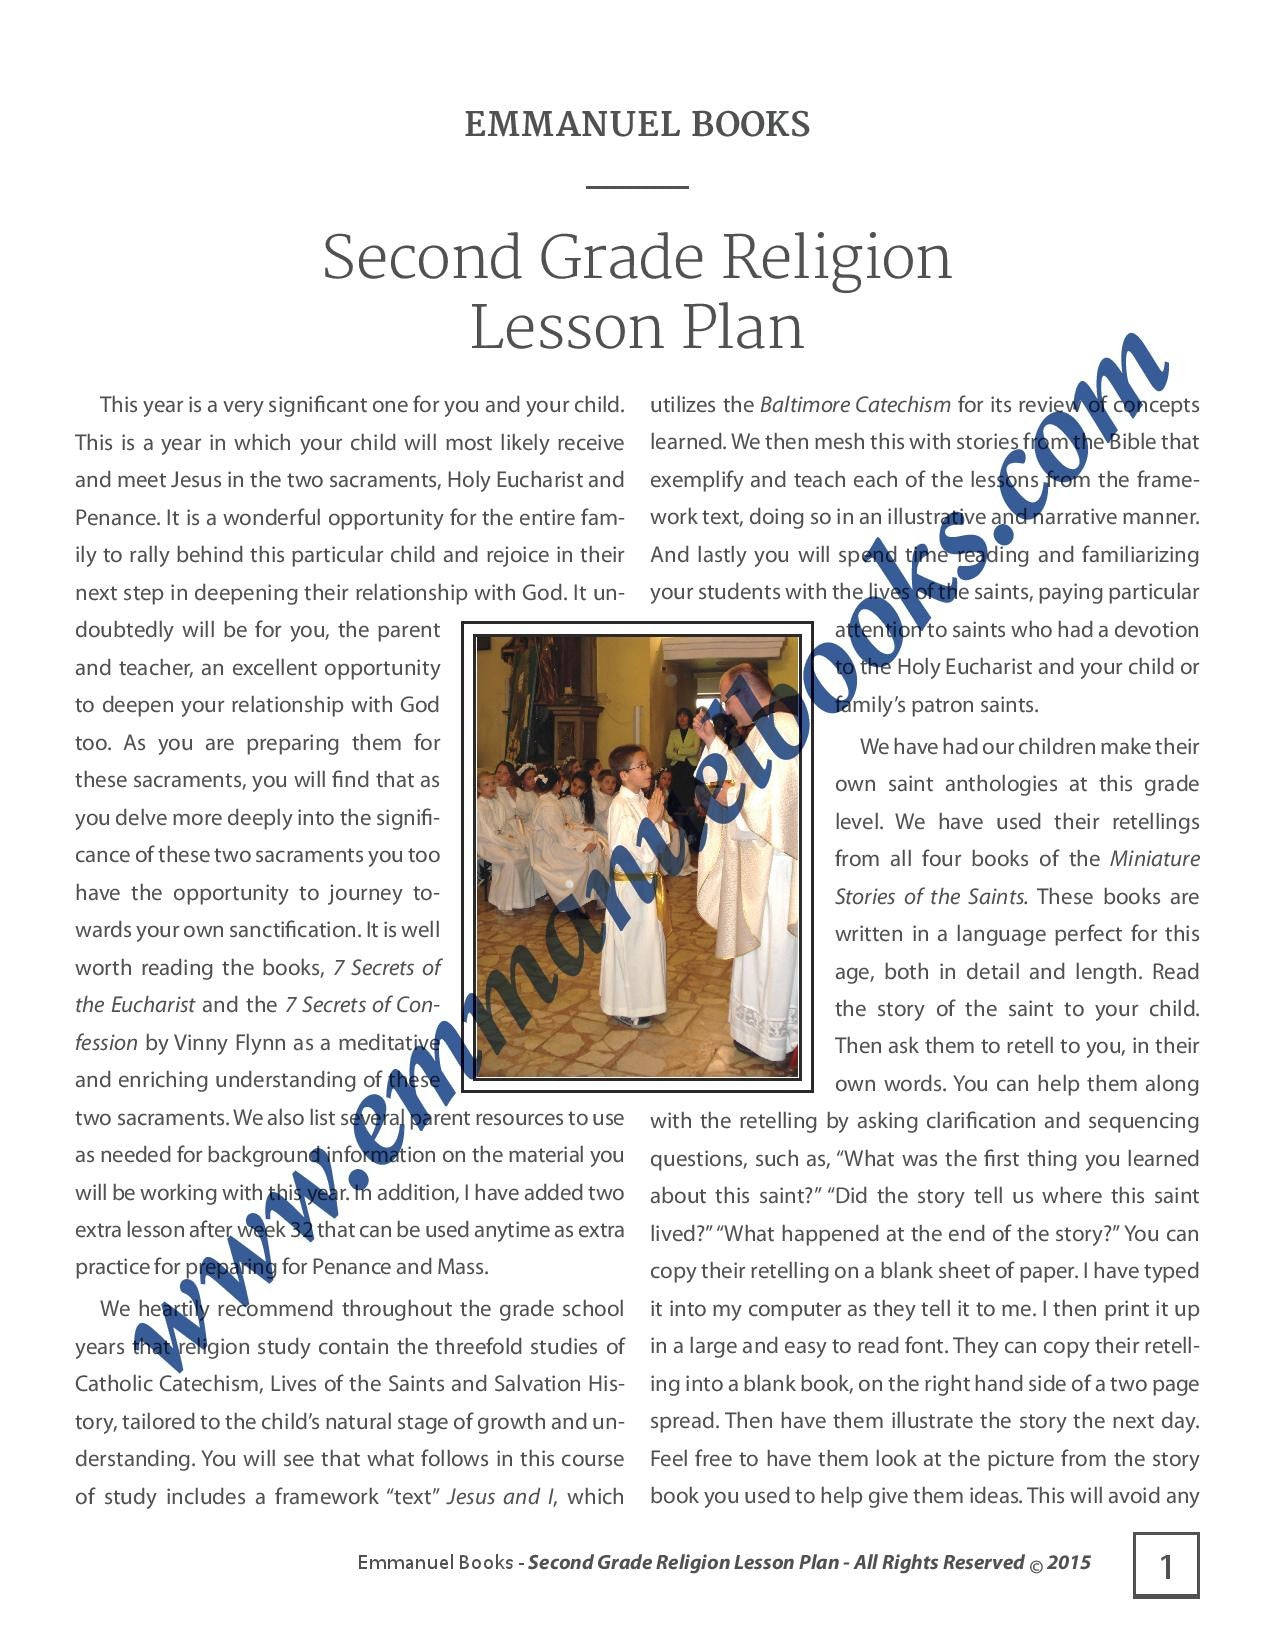 Emmanuel Books Second Grade Religion Lesson Plan